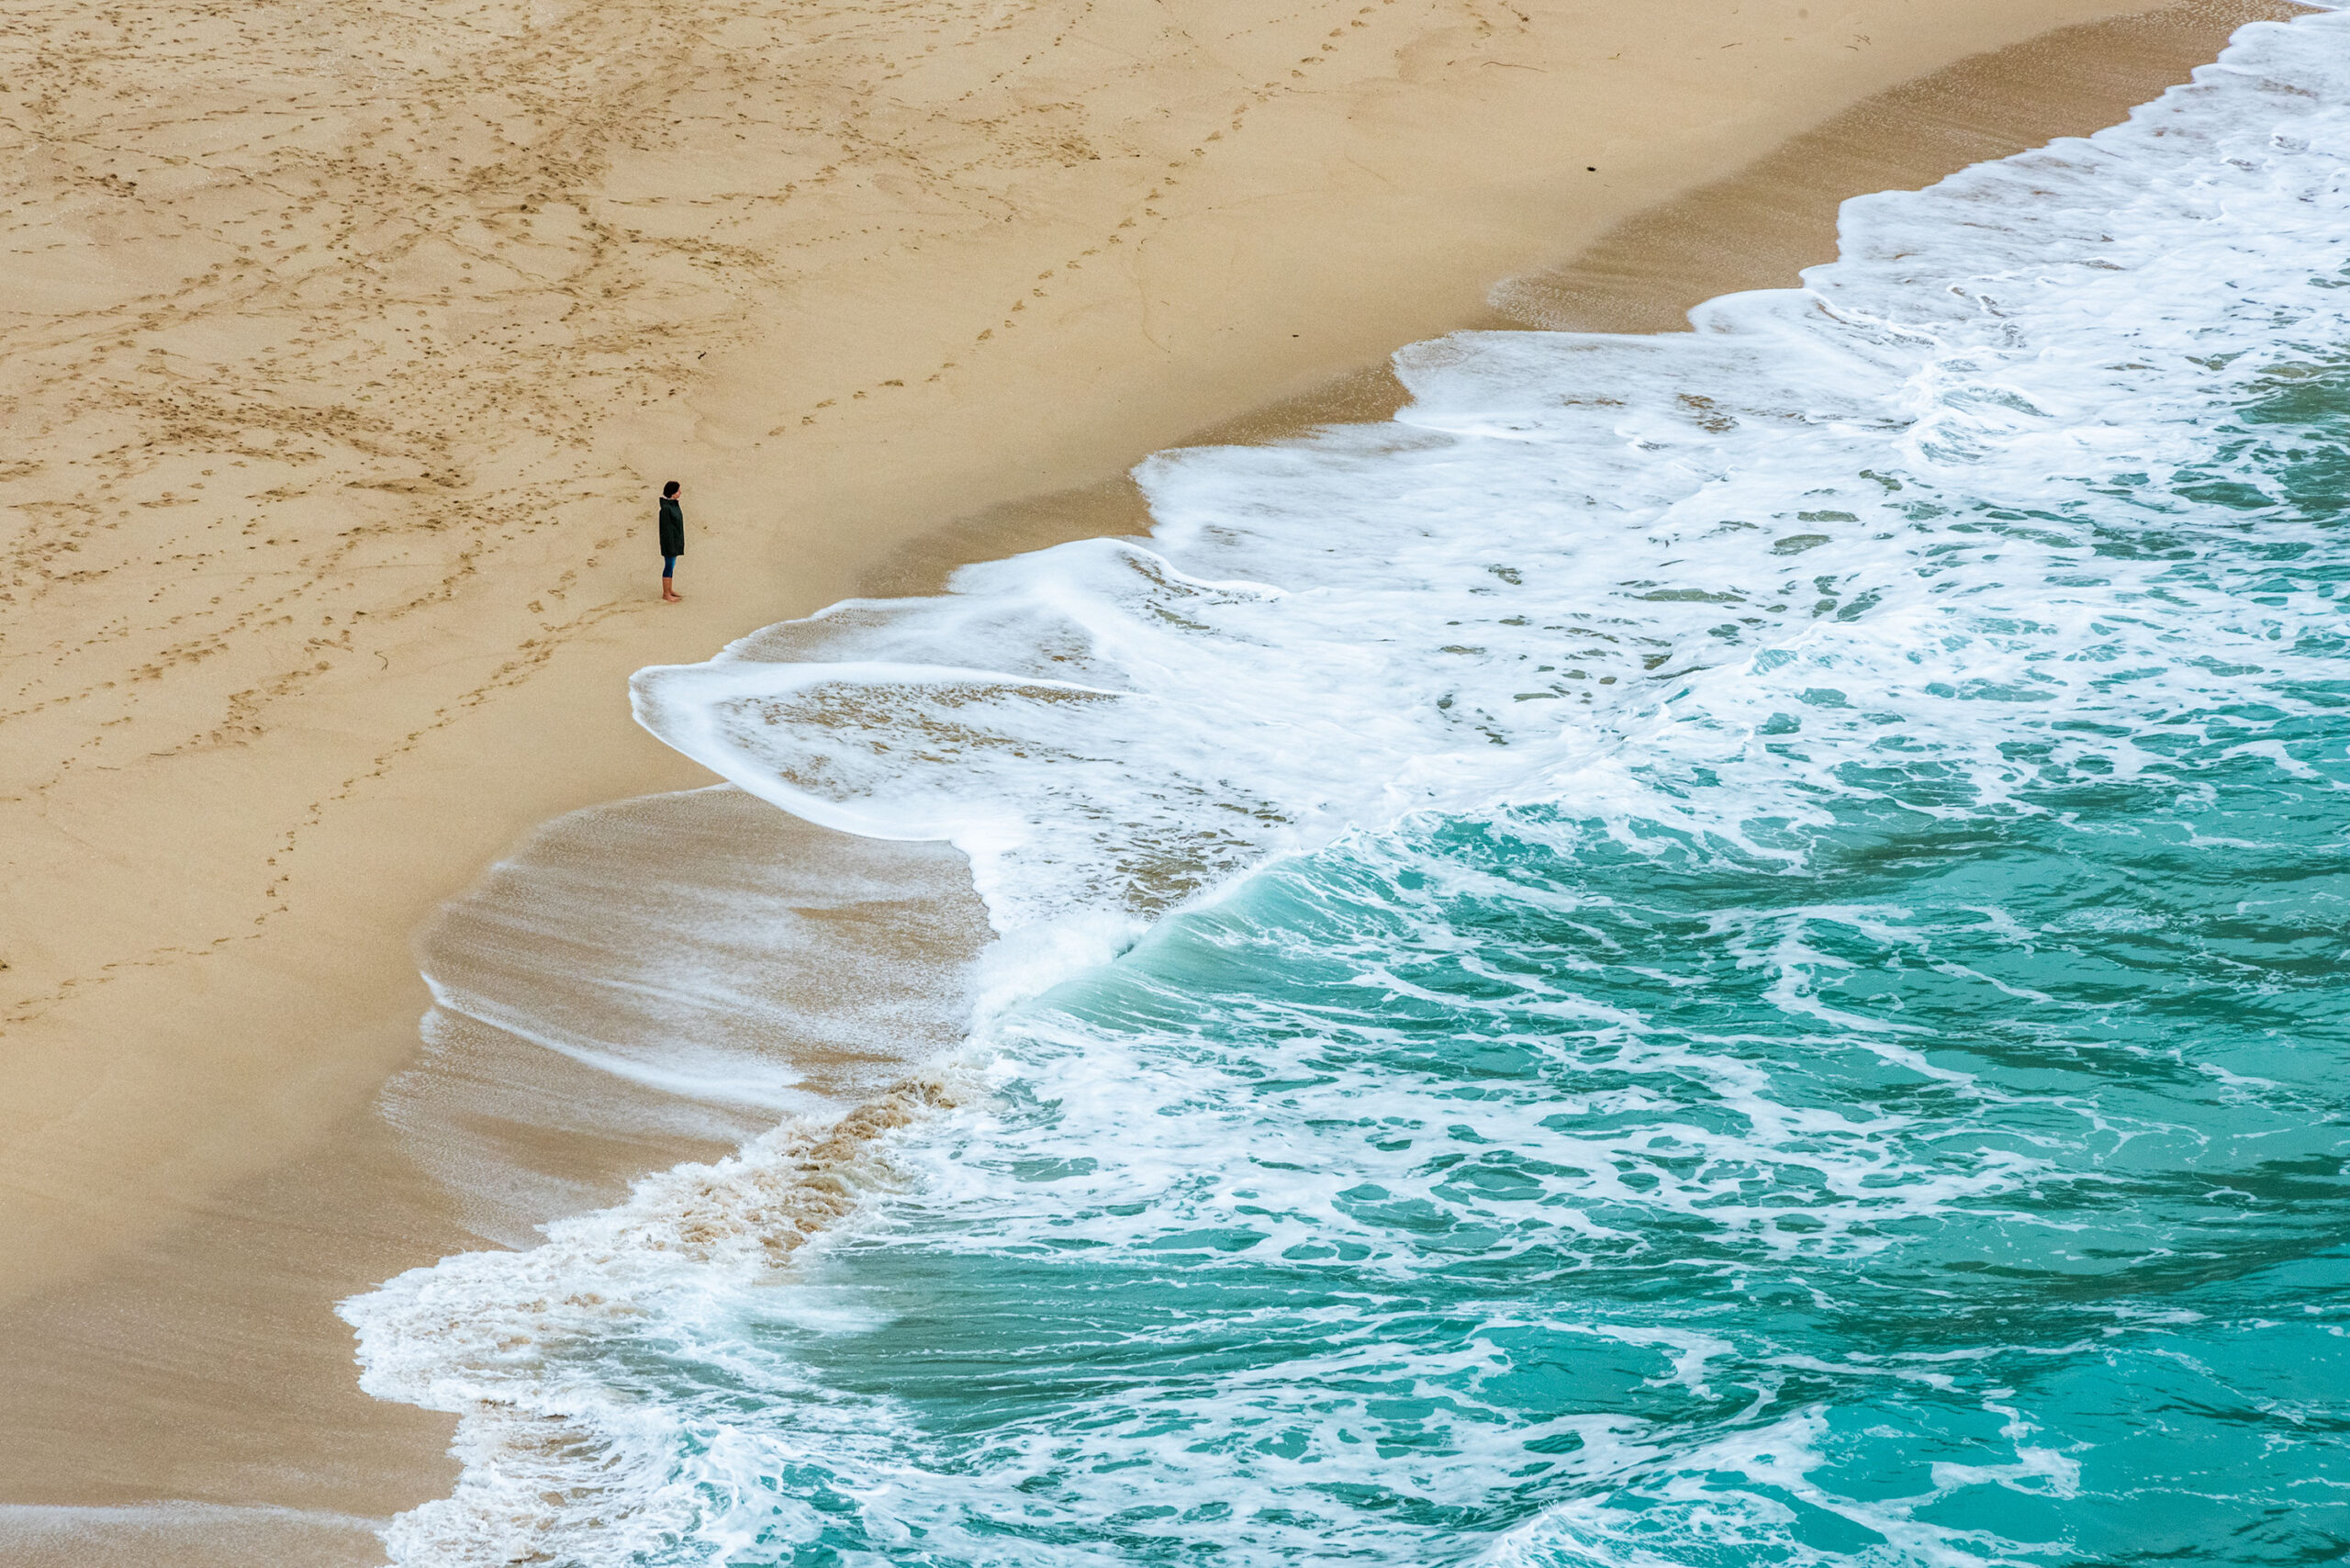 Photography of a person standing on the beach looking at the sea. Image by Jennifer Esseiva.